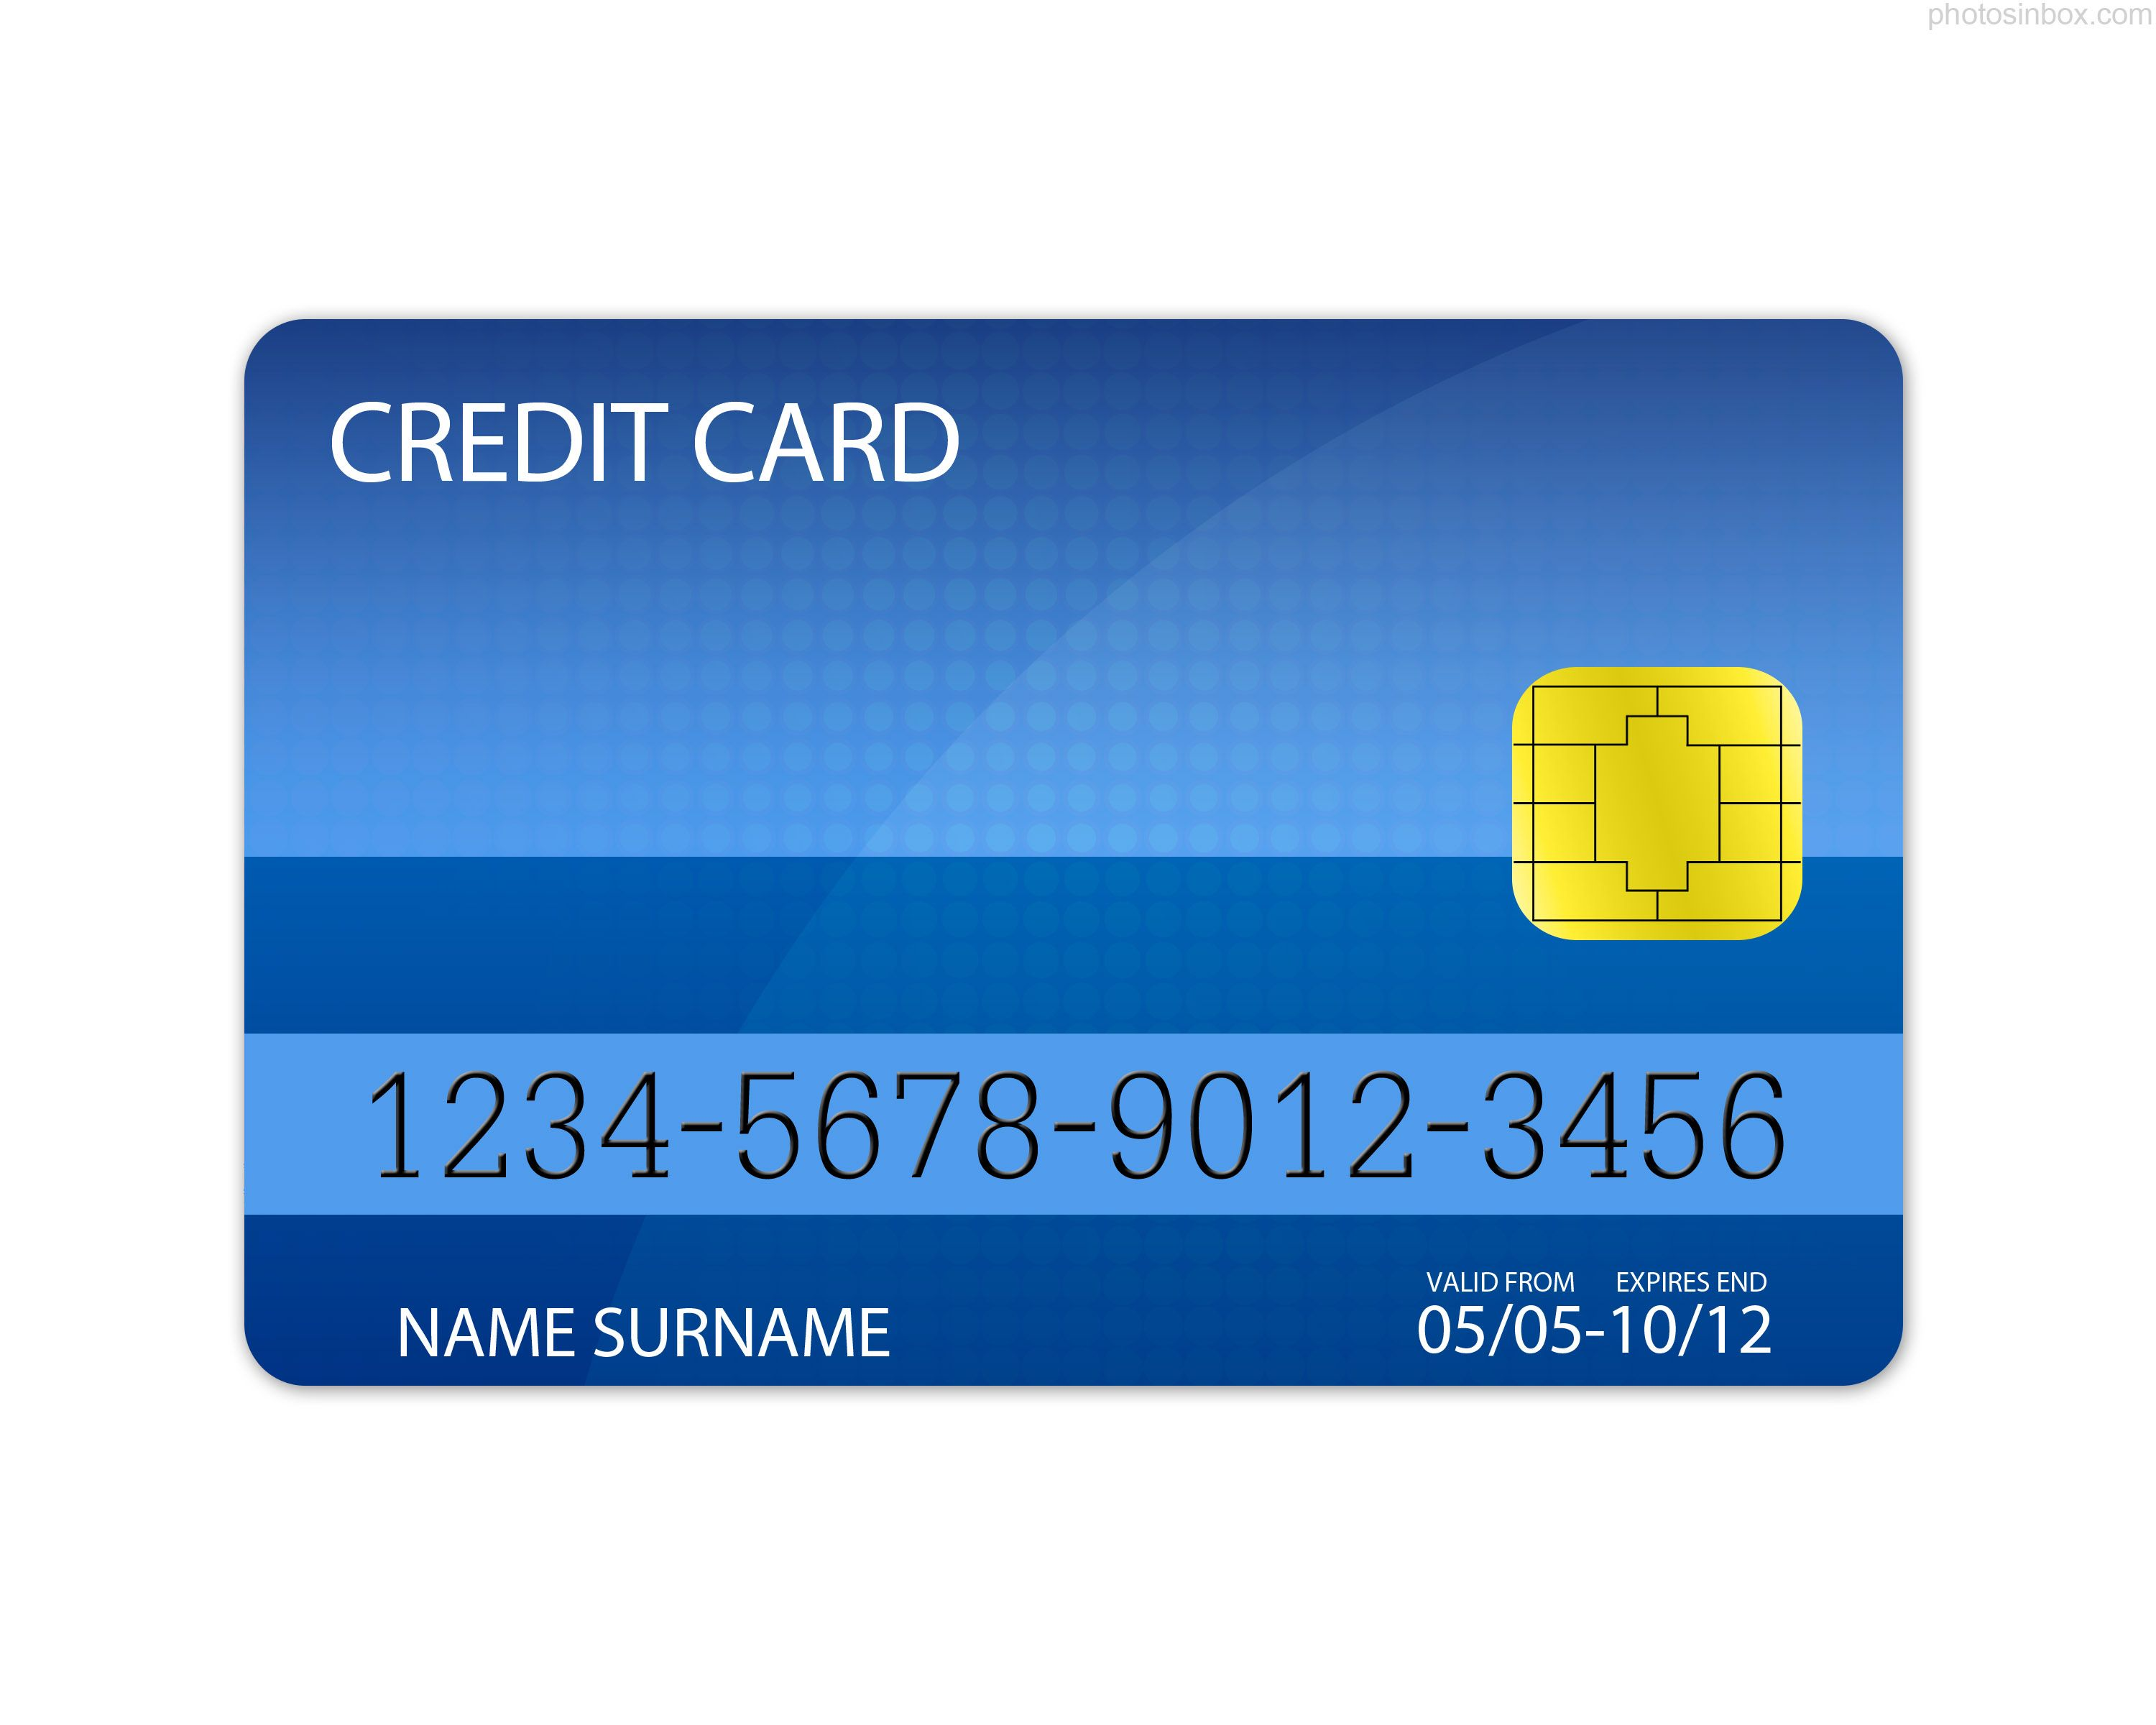 Credit card powerpoint templates credit card powerpoint templates credit card powerpoint templates credit card powerpoint templates credit card frauds ppt credit card powerpoint credit toneelgroepblik Gallery